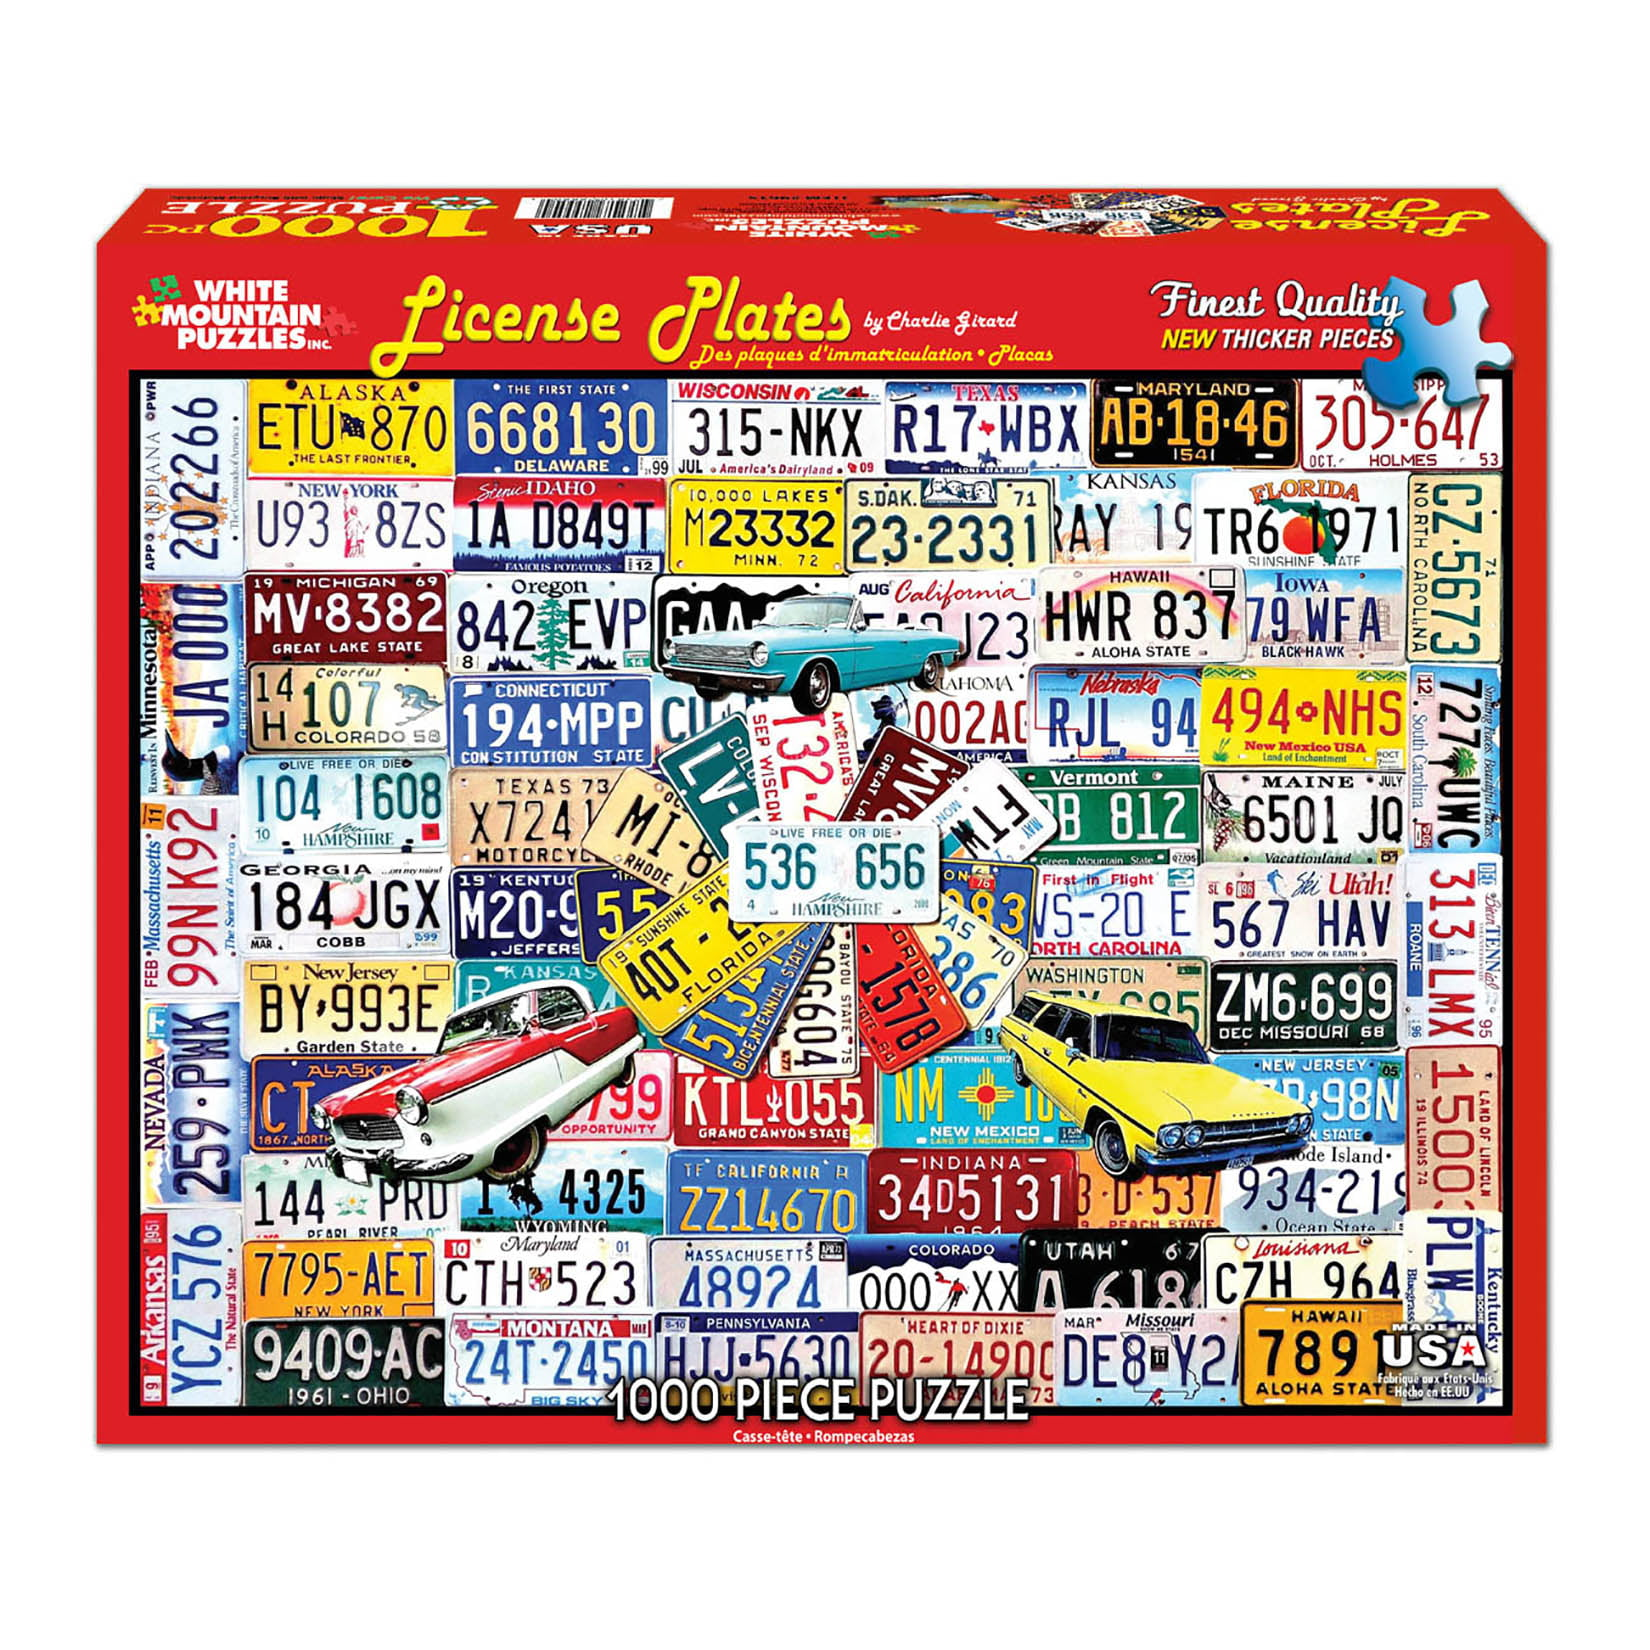 White Mountain Puzzles License Plates 1000 Piece Jigsaw Puzzle by White Mountain Puzzles